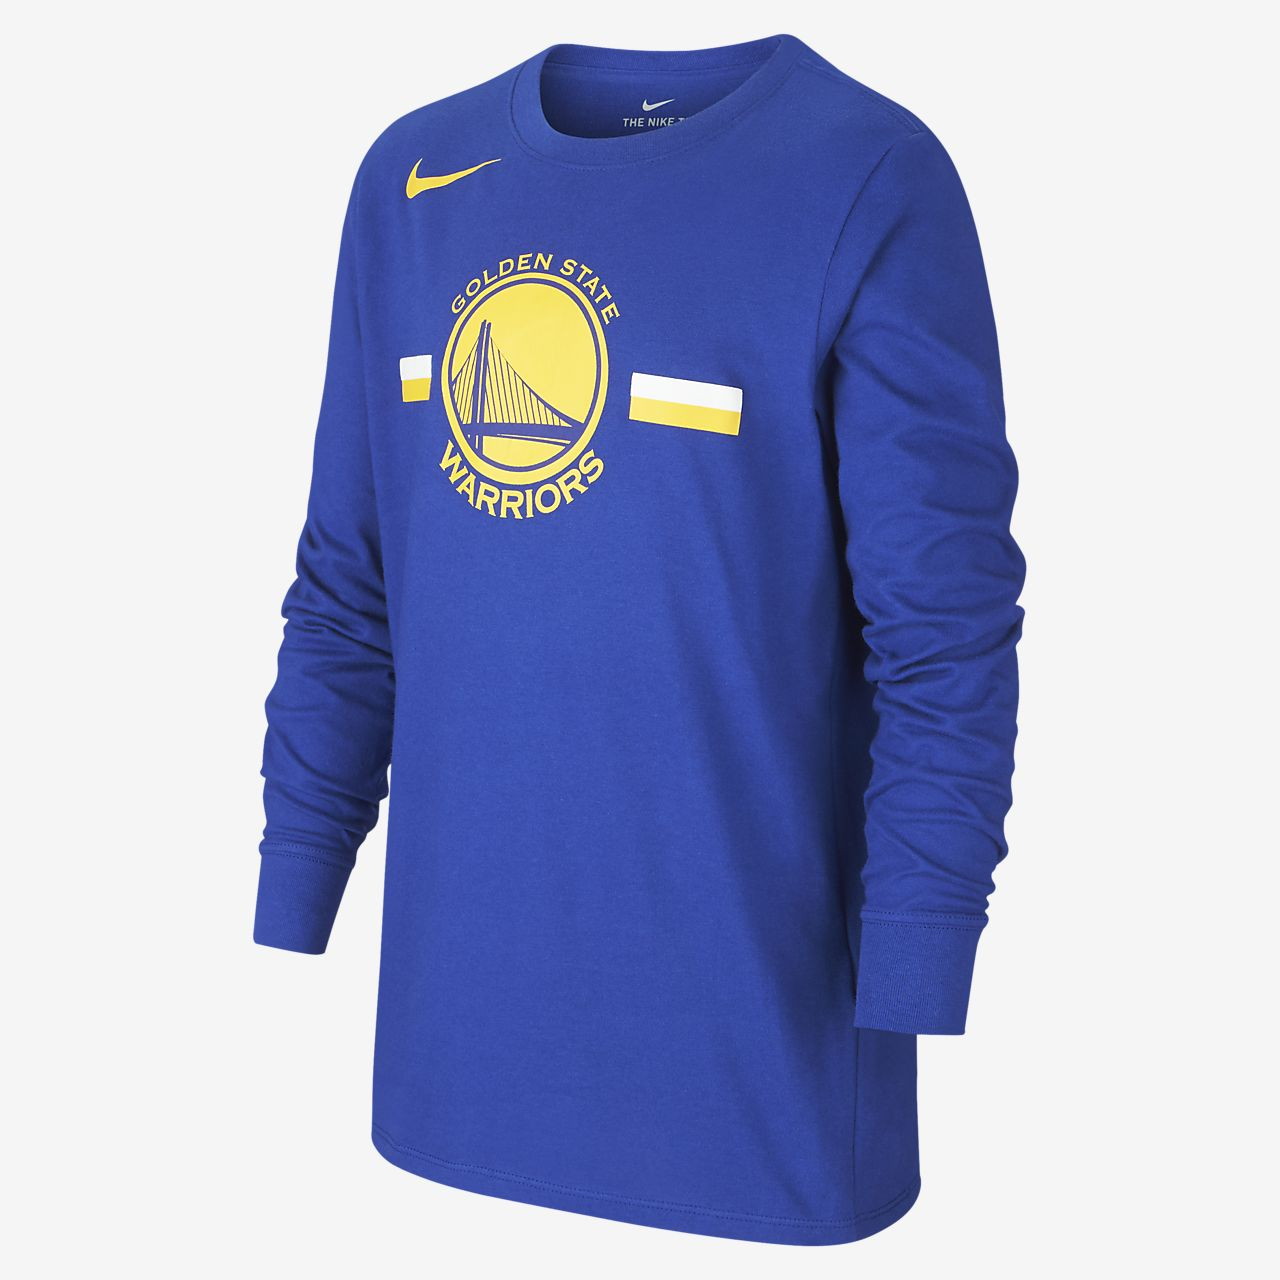 Golden State Warriors Nike Dri-FIT Logo NBA-kindershirt met lange mouwen